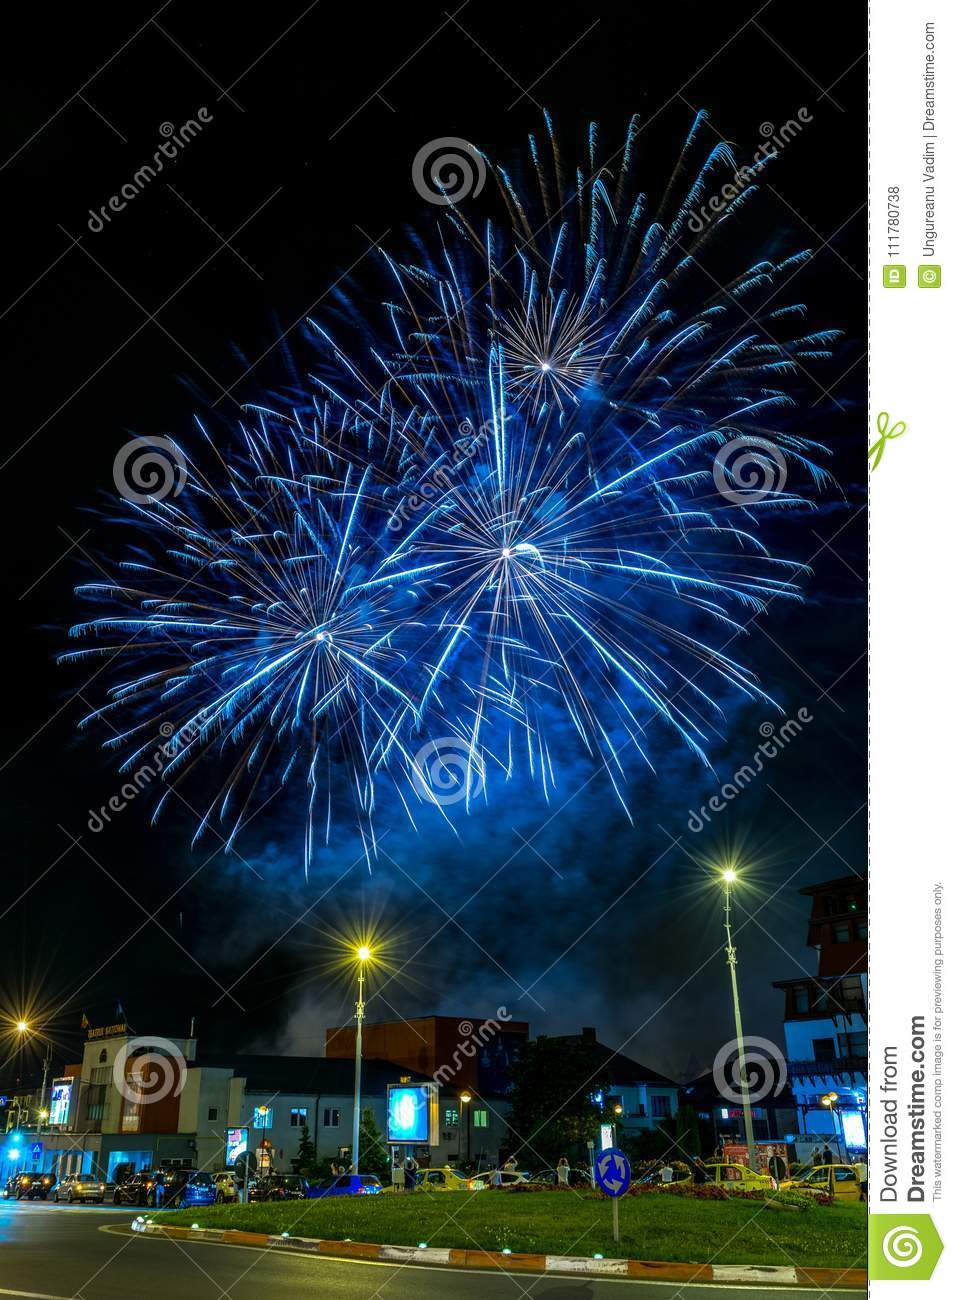 Fireworks during the closing ceremony of the FITS Festival in Sibiu, Romania